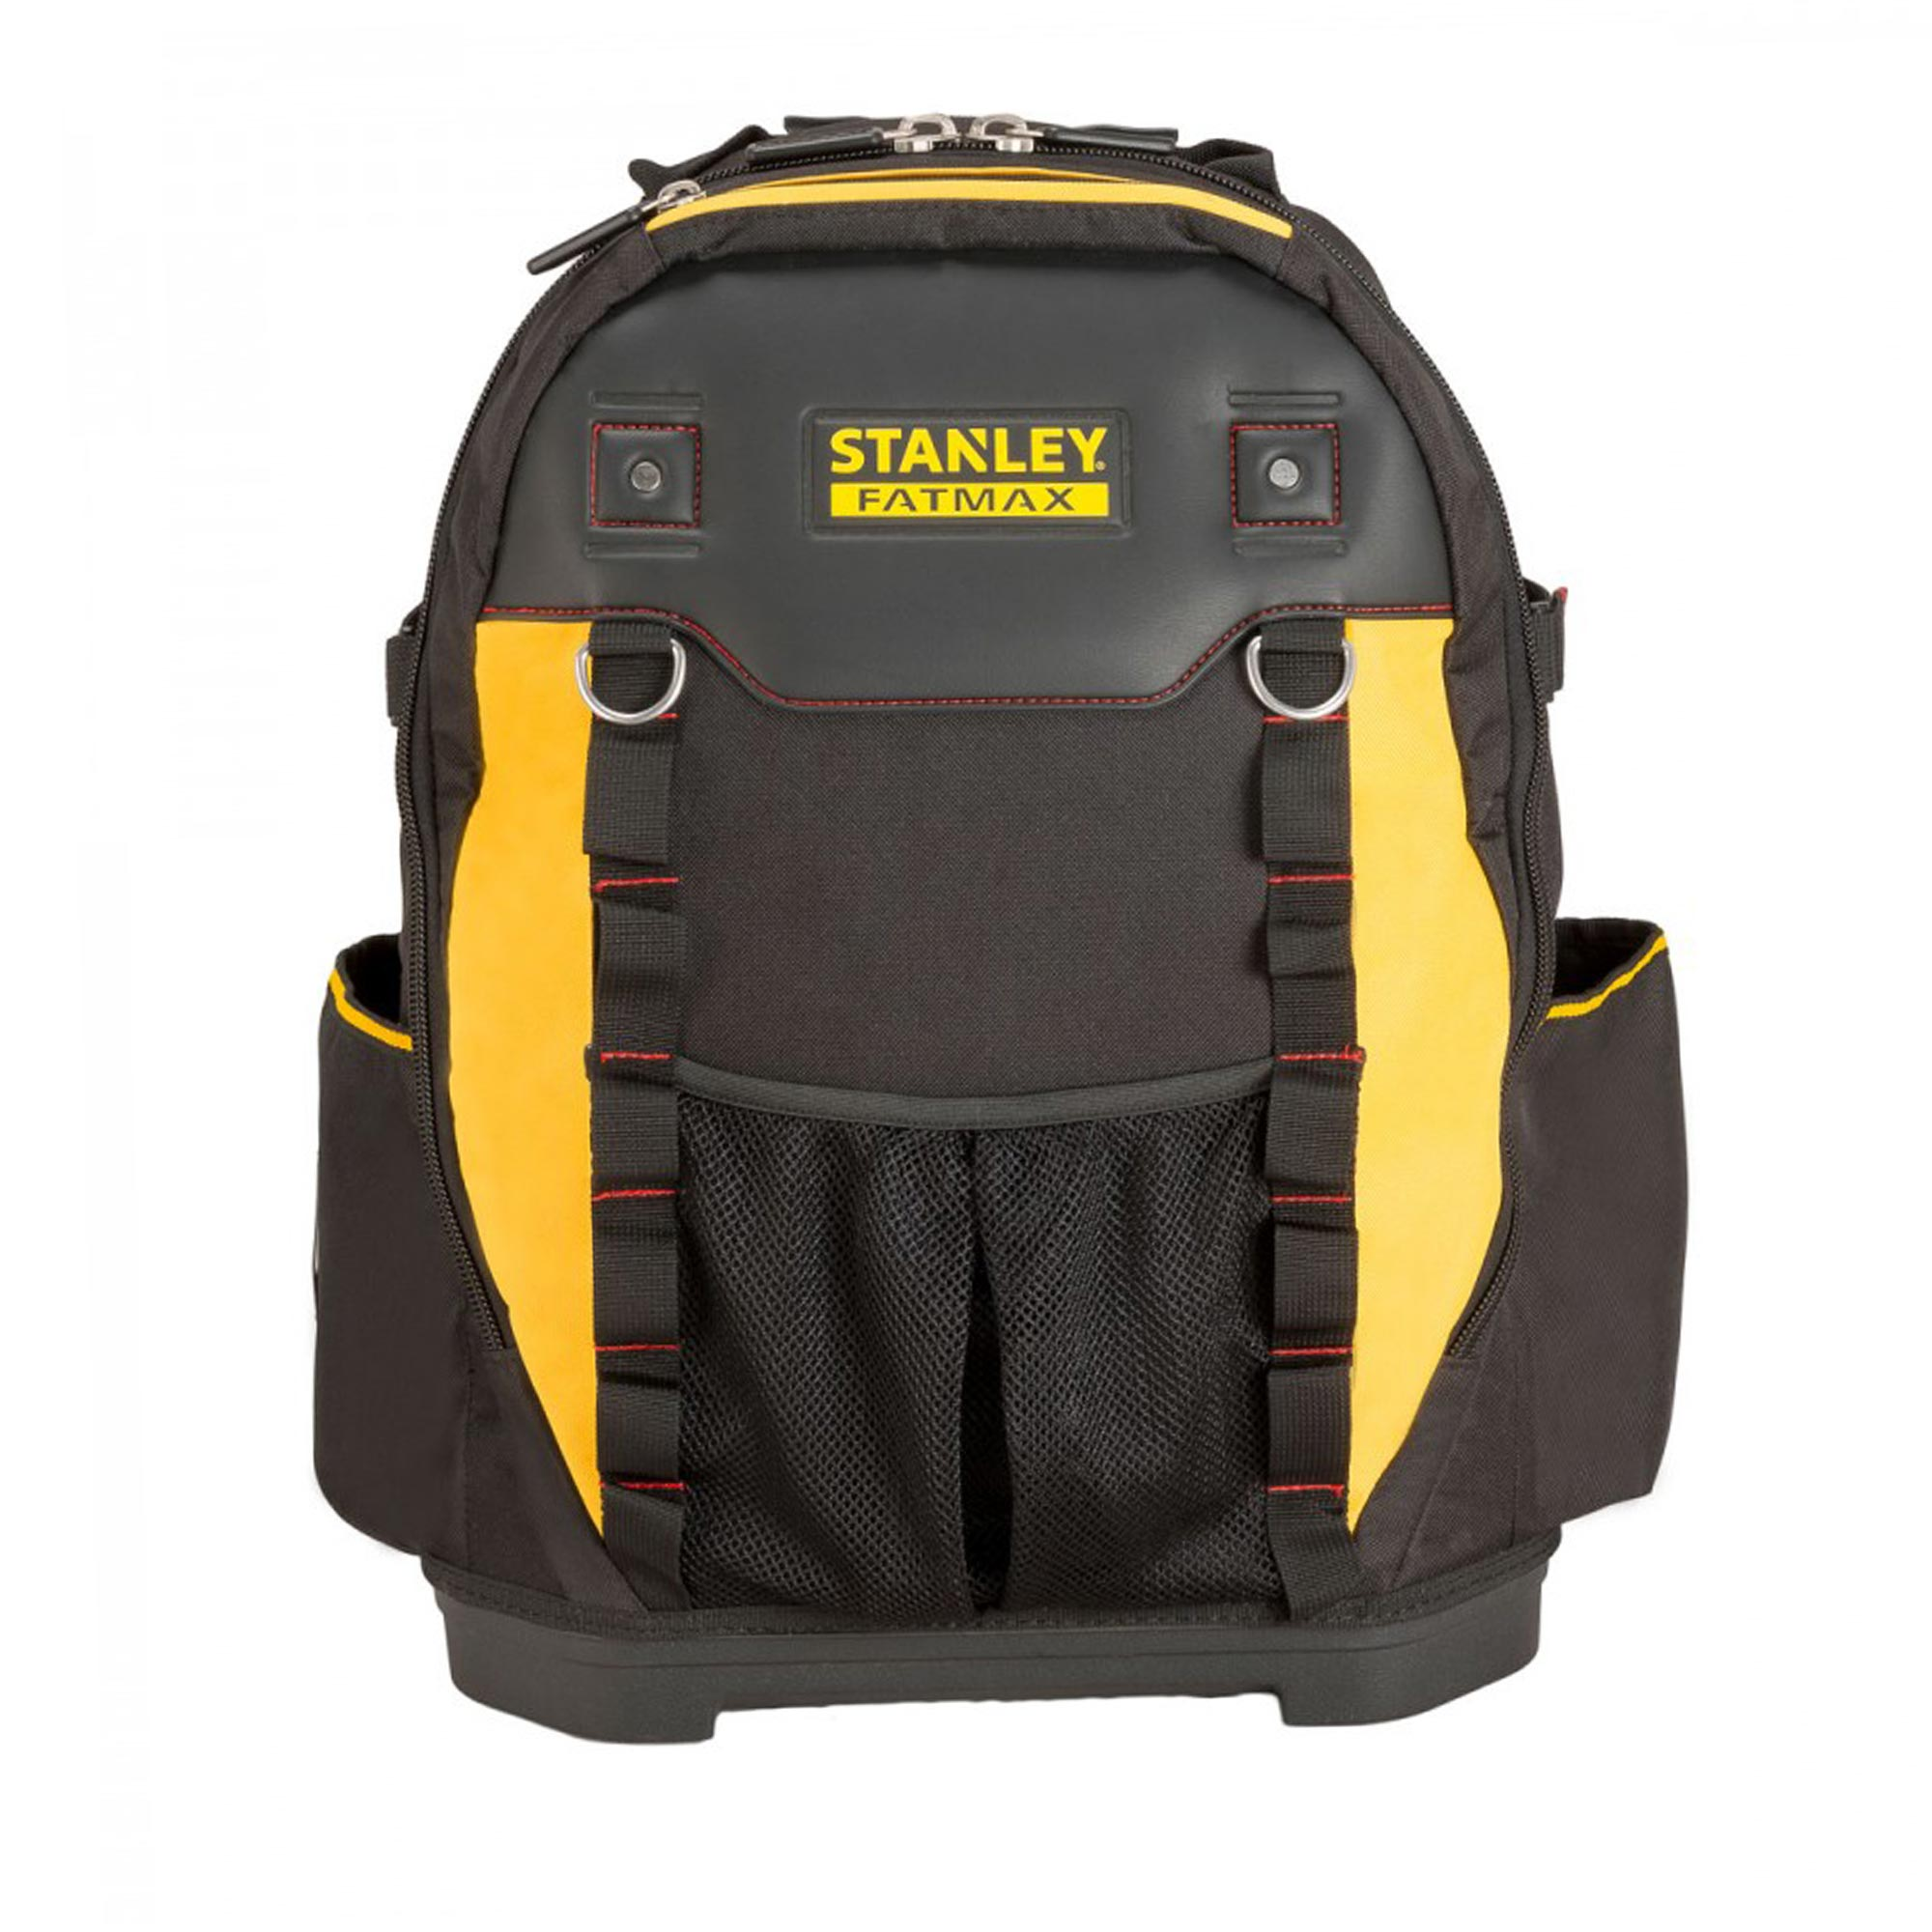 stanley 1 95 611 stanley fatmax tool backpack. Black Bedroom Furniture Sets. Home Design Ideas